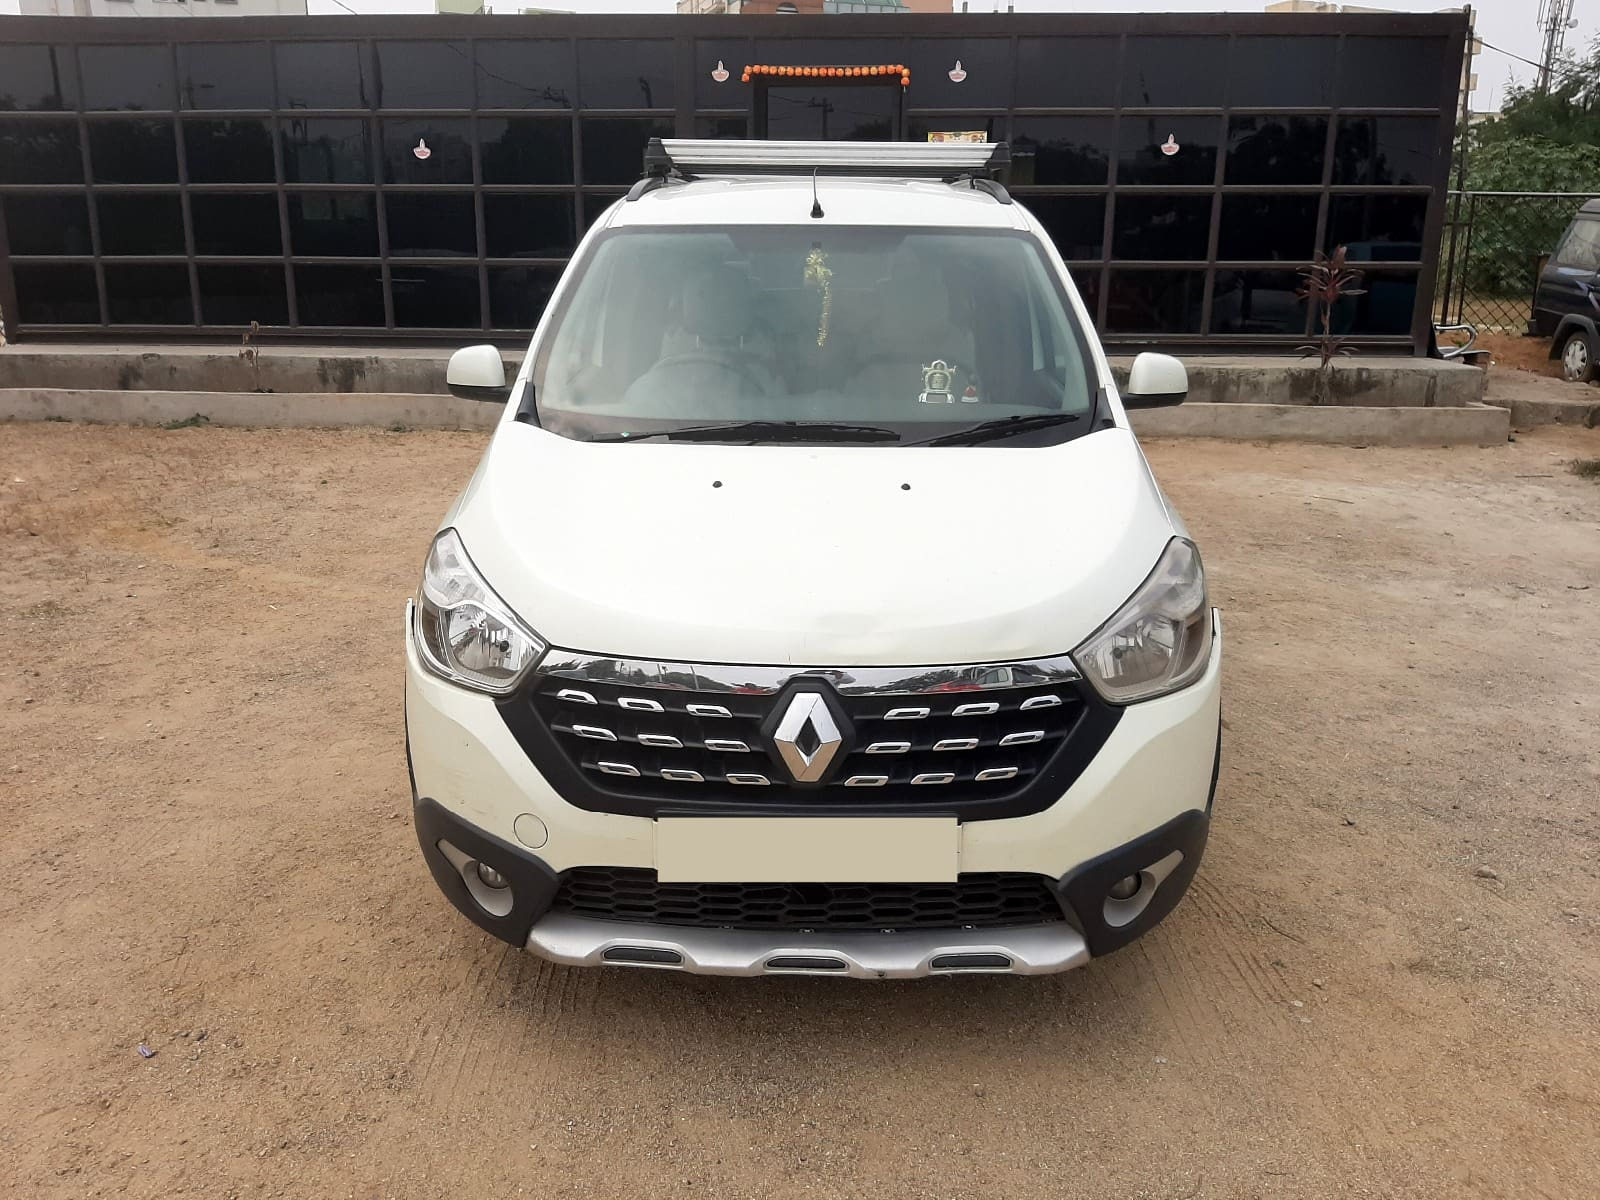 Renault Lodgy 110PS RxZ 7 Seater